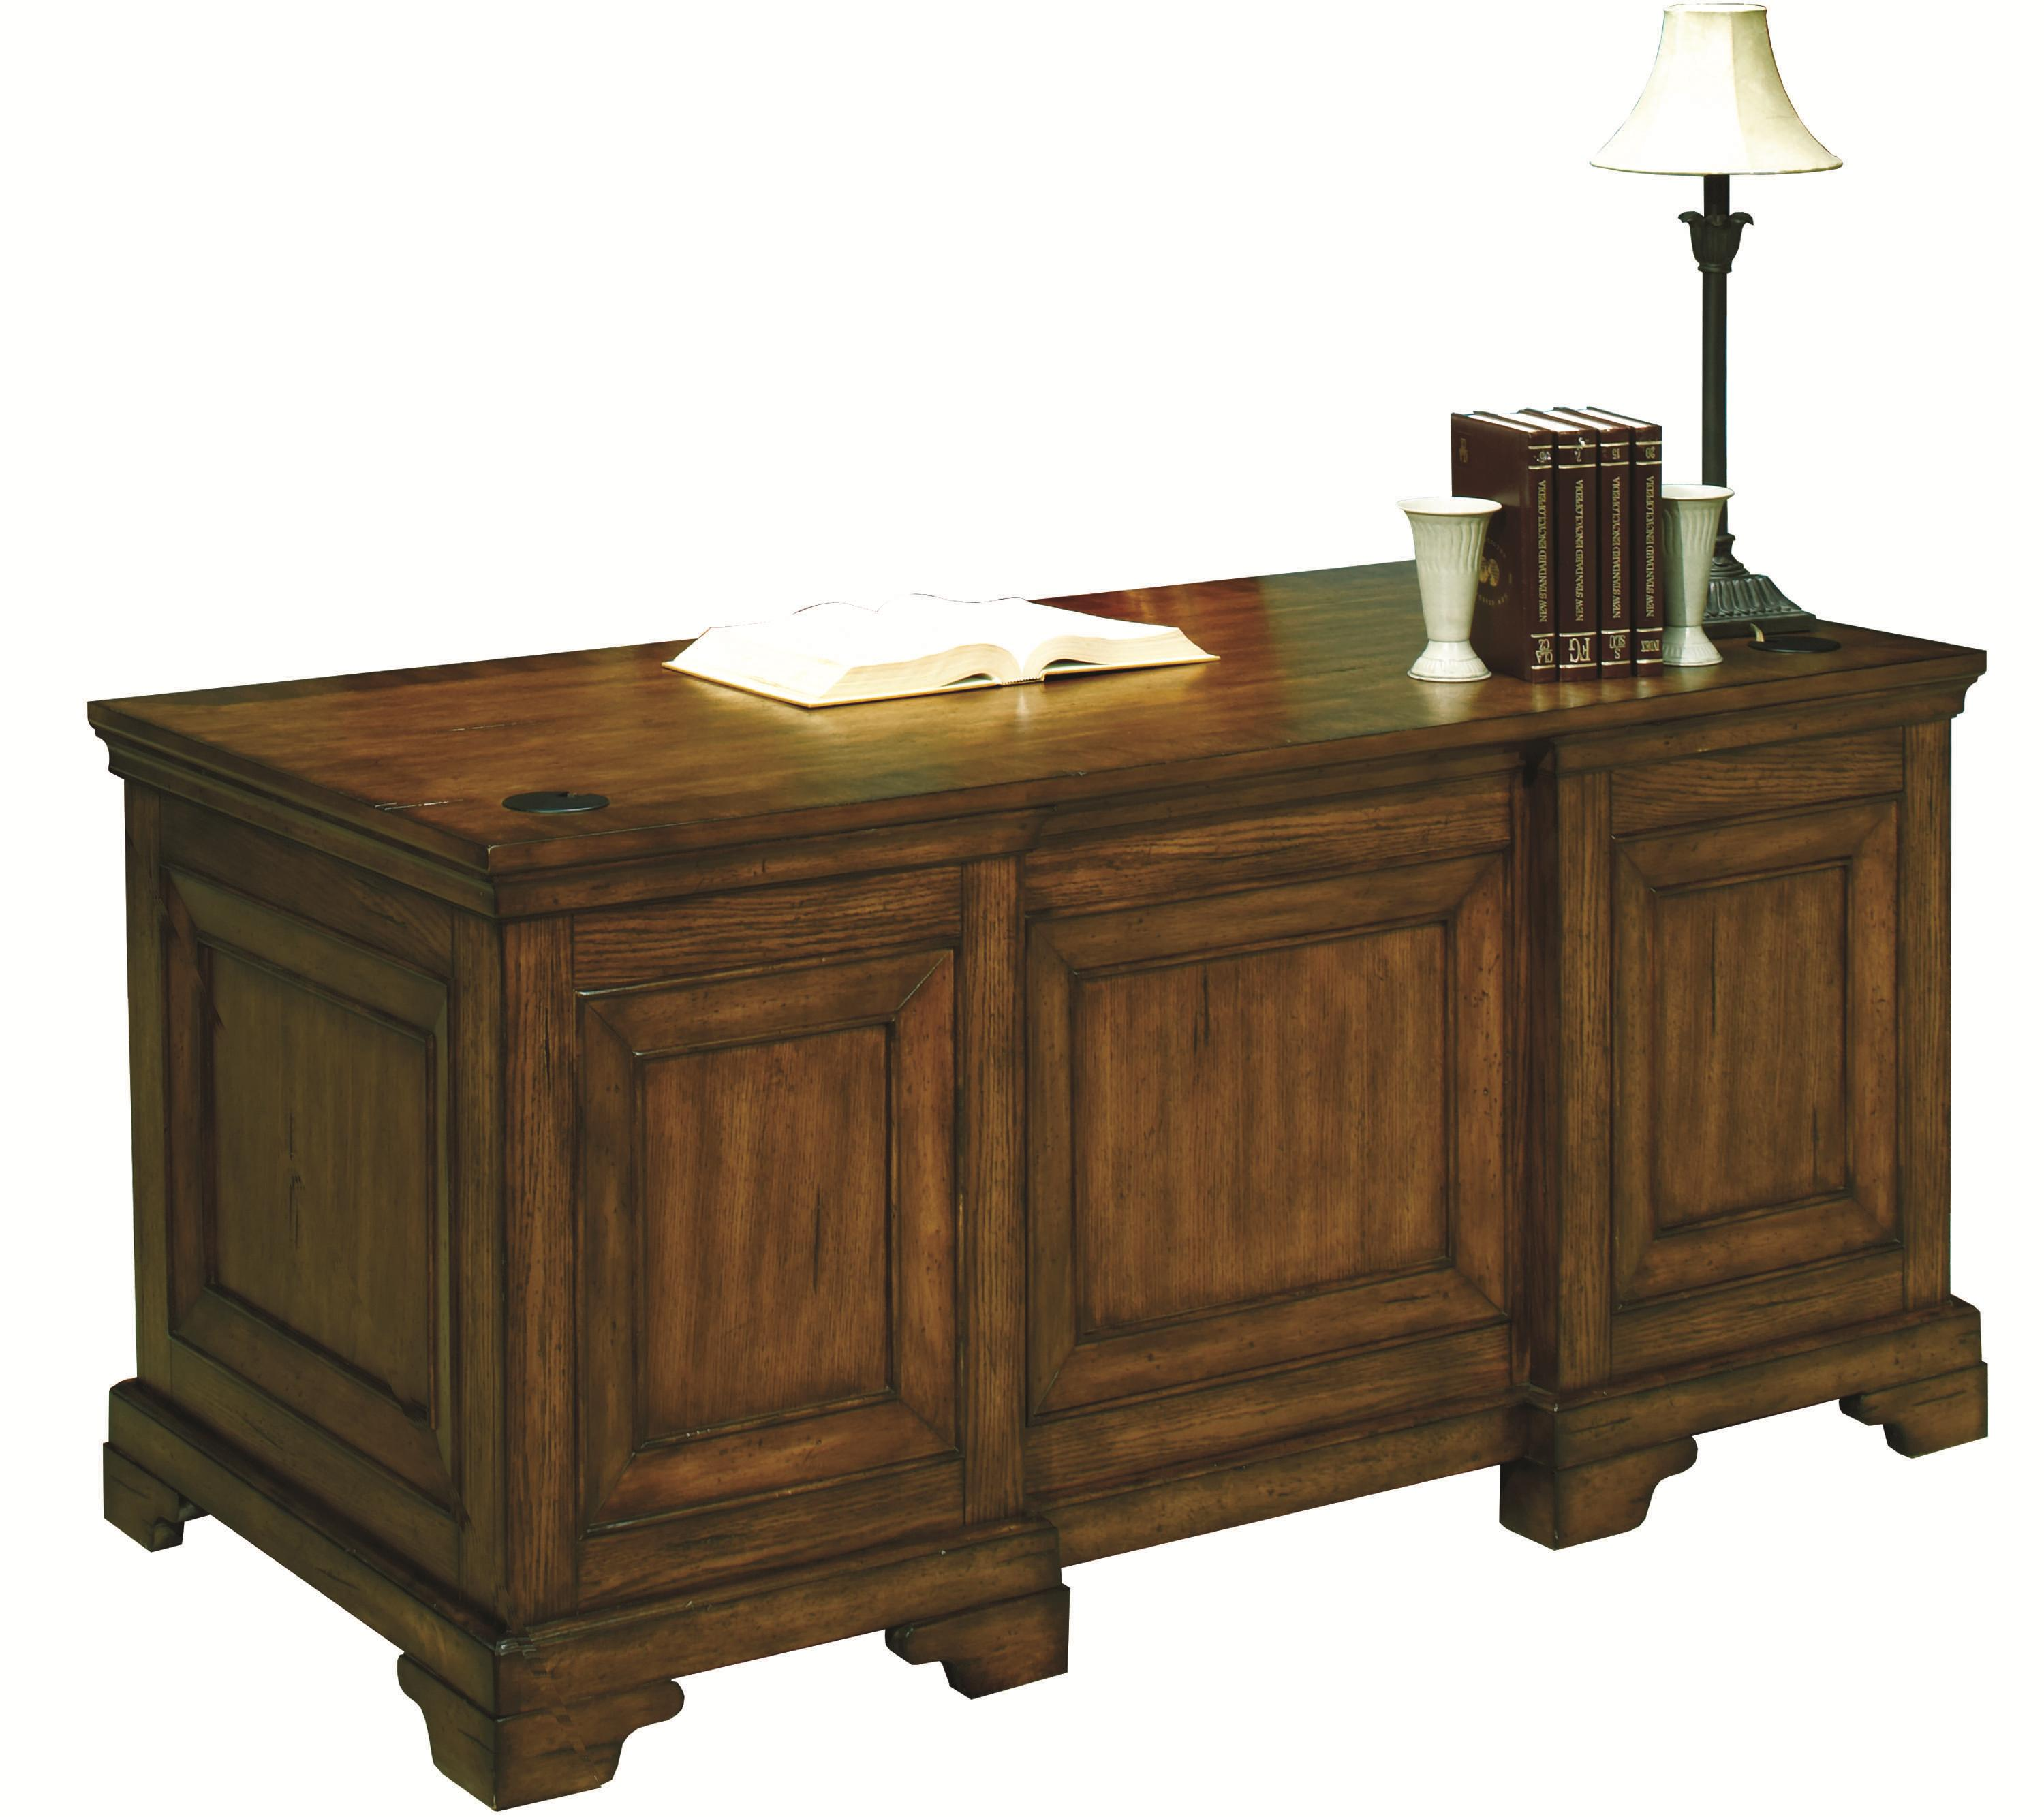 Aspenhome Centennial Executive Desk - Item Number: I49-303-2